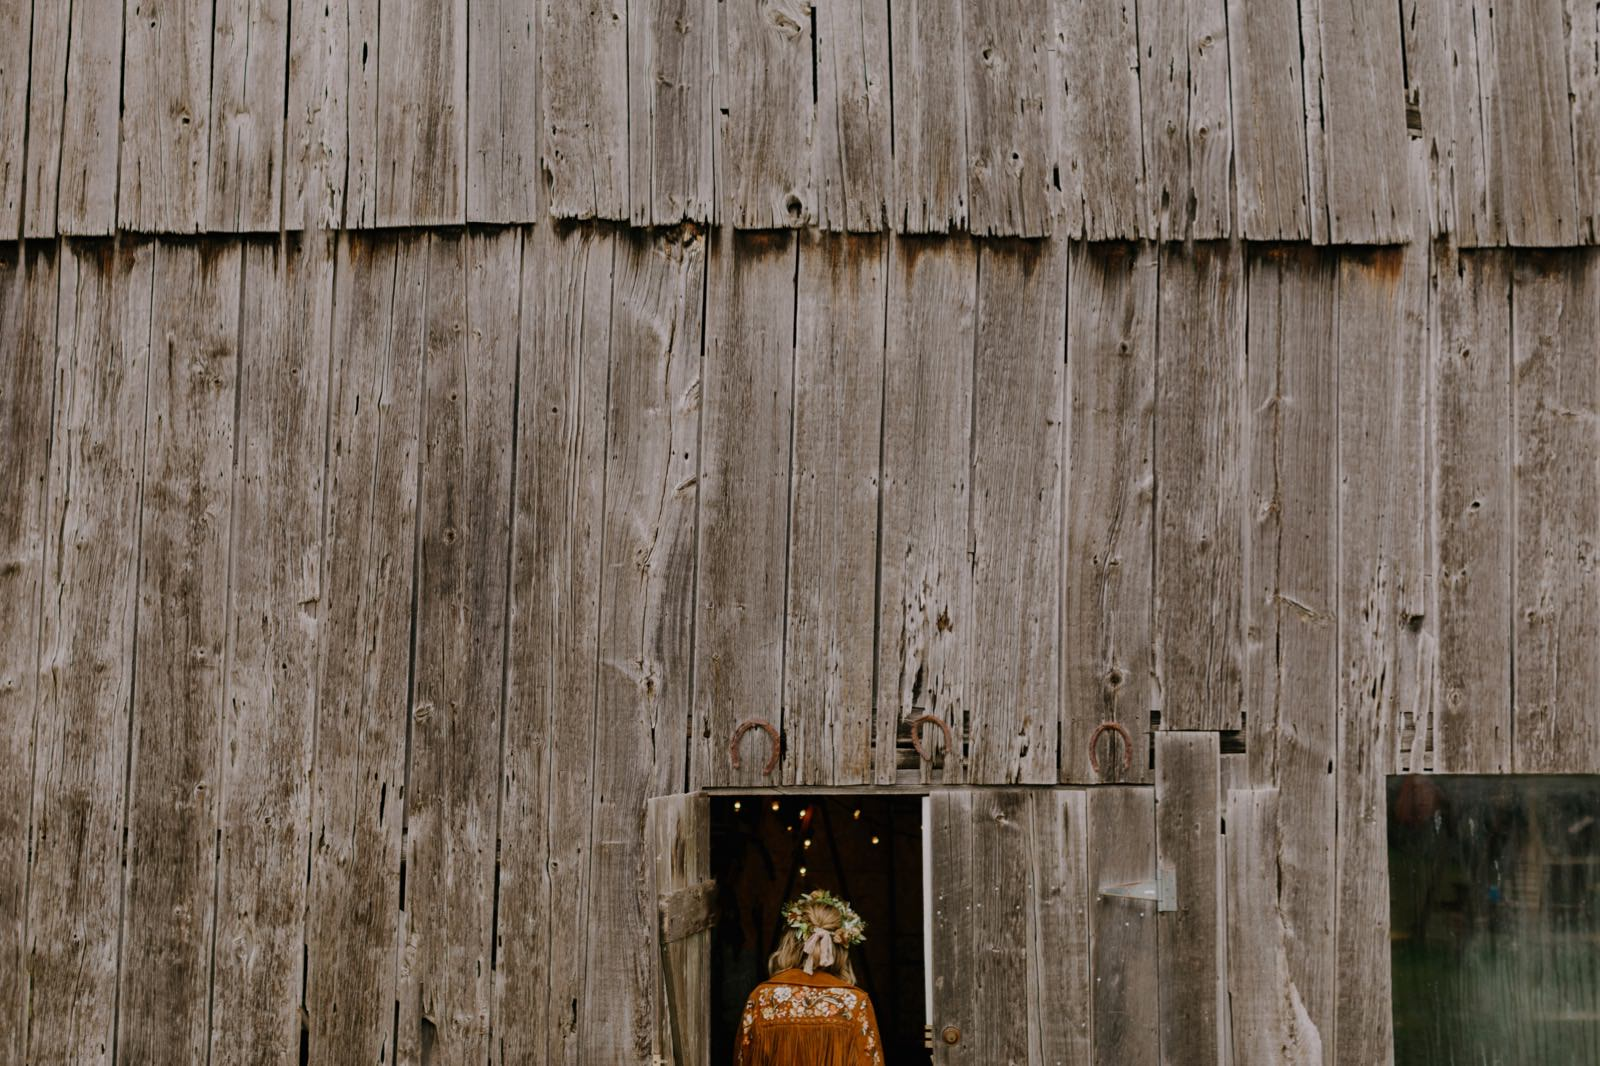 076_Jessy & Perry Wedding 0342_autumn_cinematic_outdoor_family_fall_michigan_barn_intimate_emotional_wedding